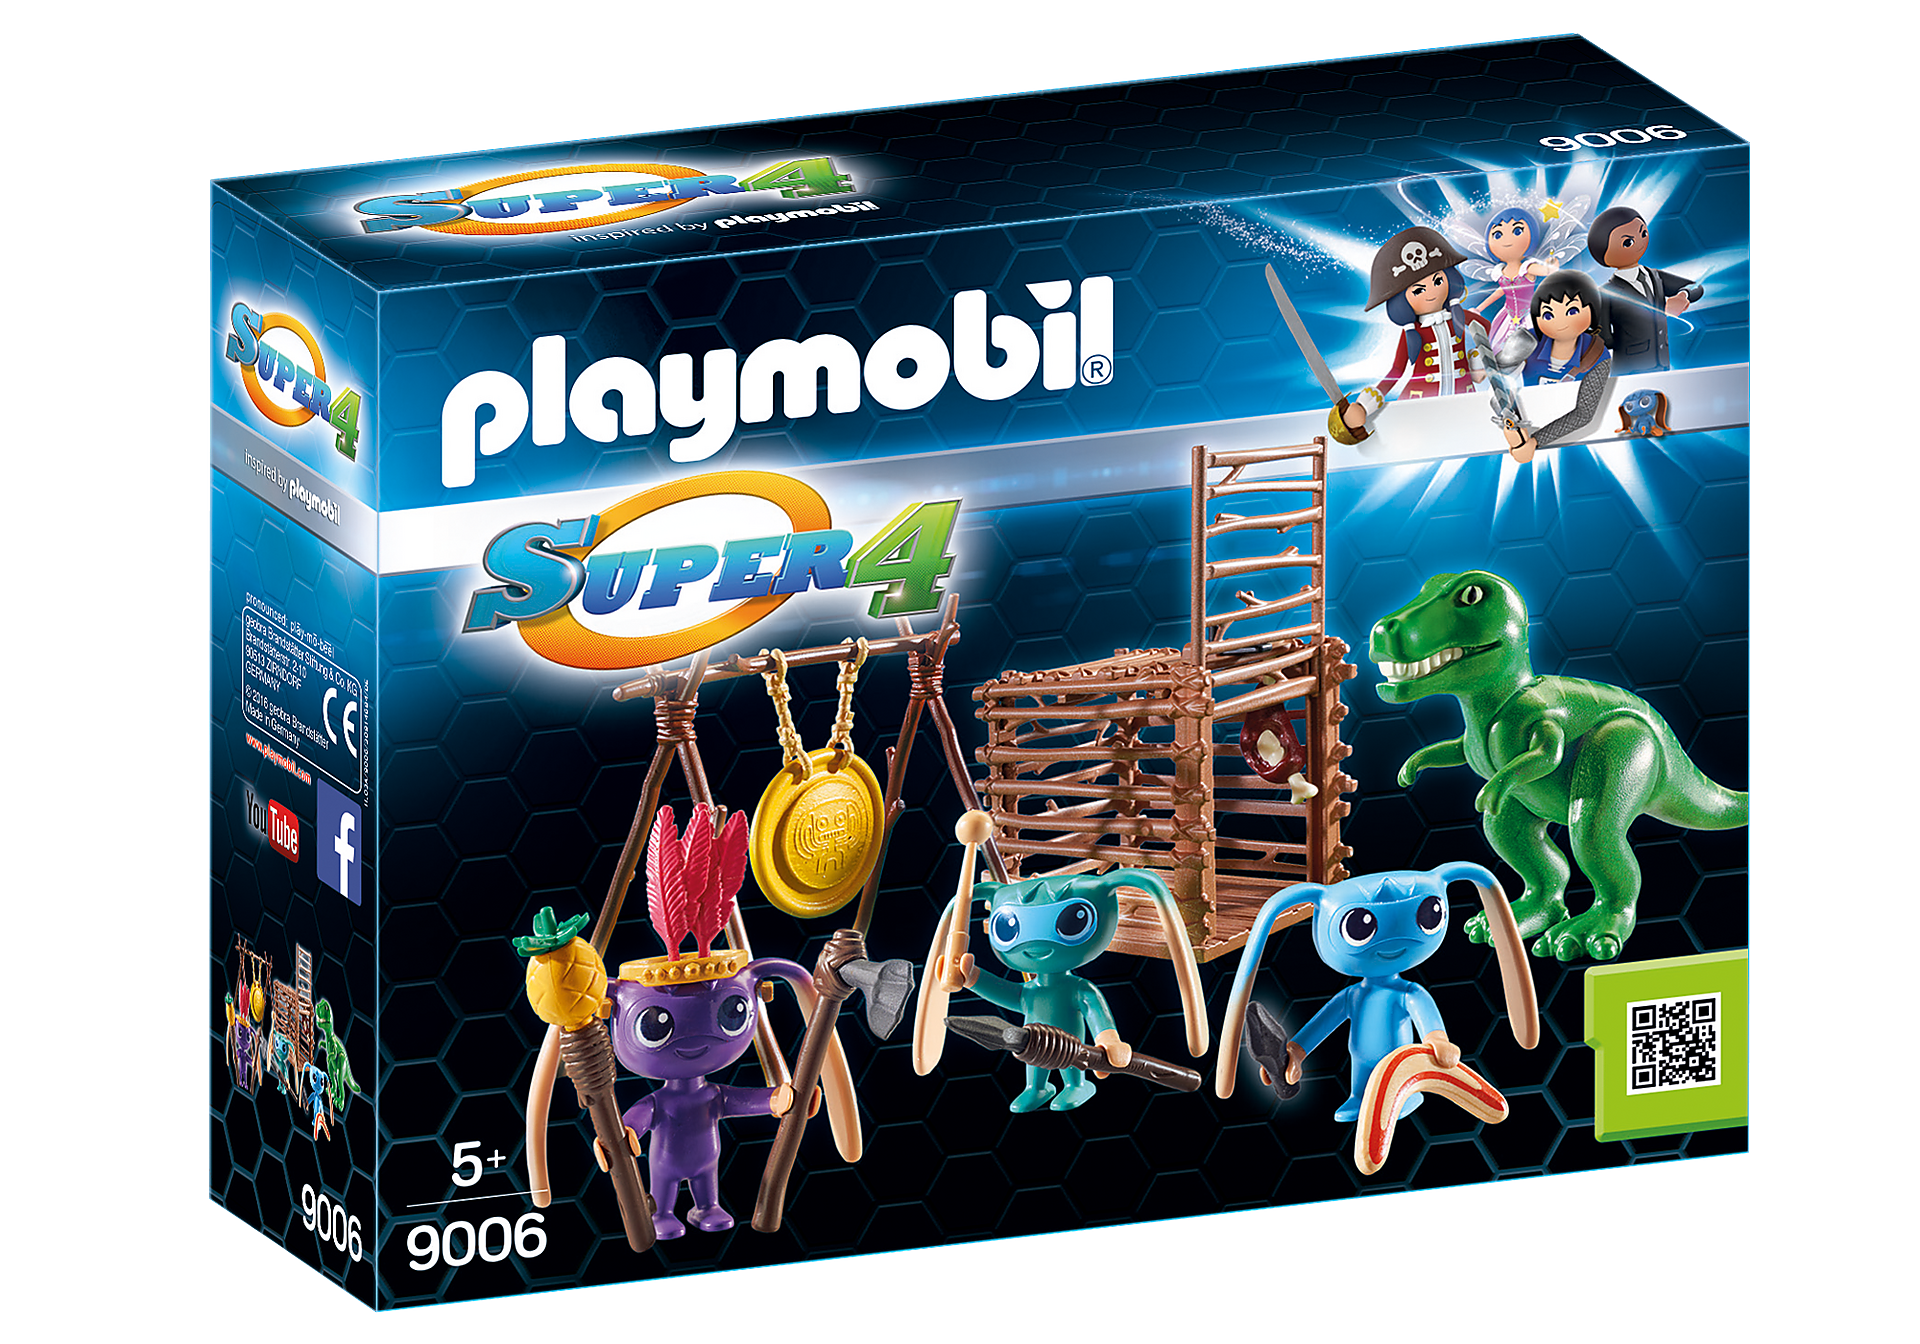 http://media.playmobil.com/i/playmobil/9006_product_box_front/Alien-Krieger mit T-Rex-Falle